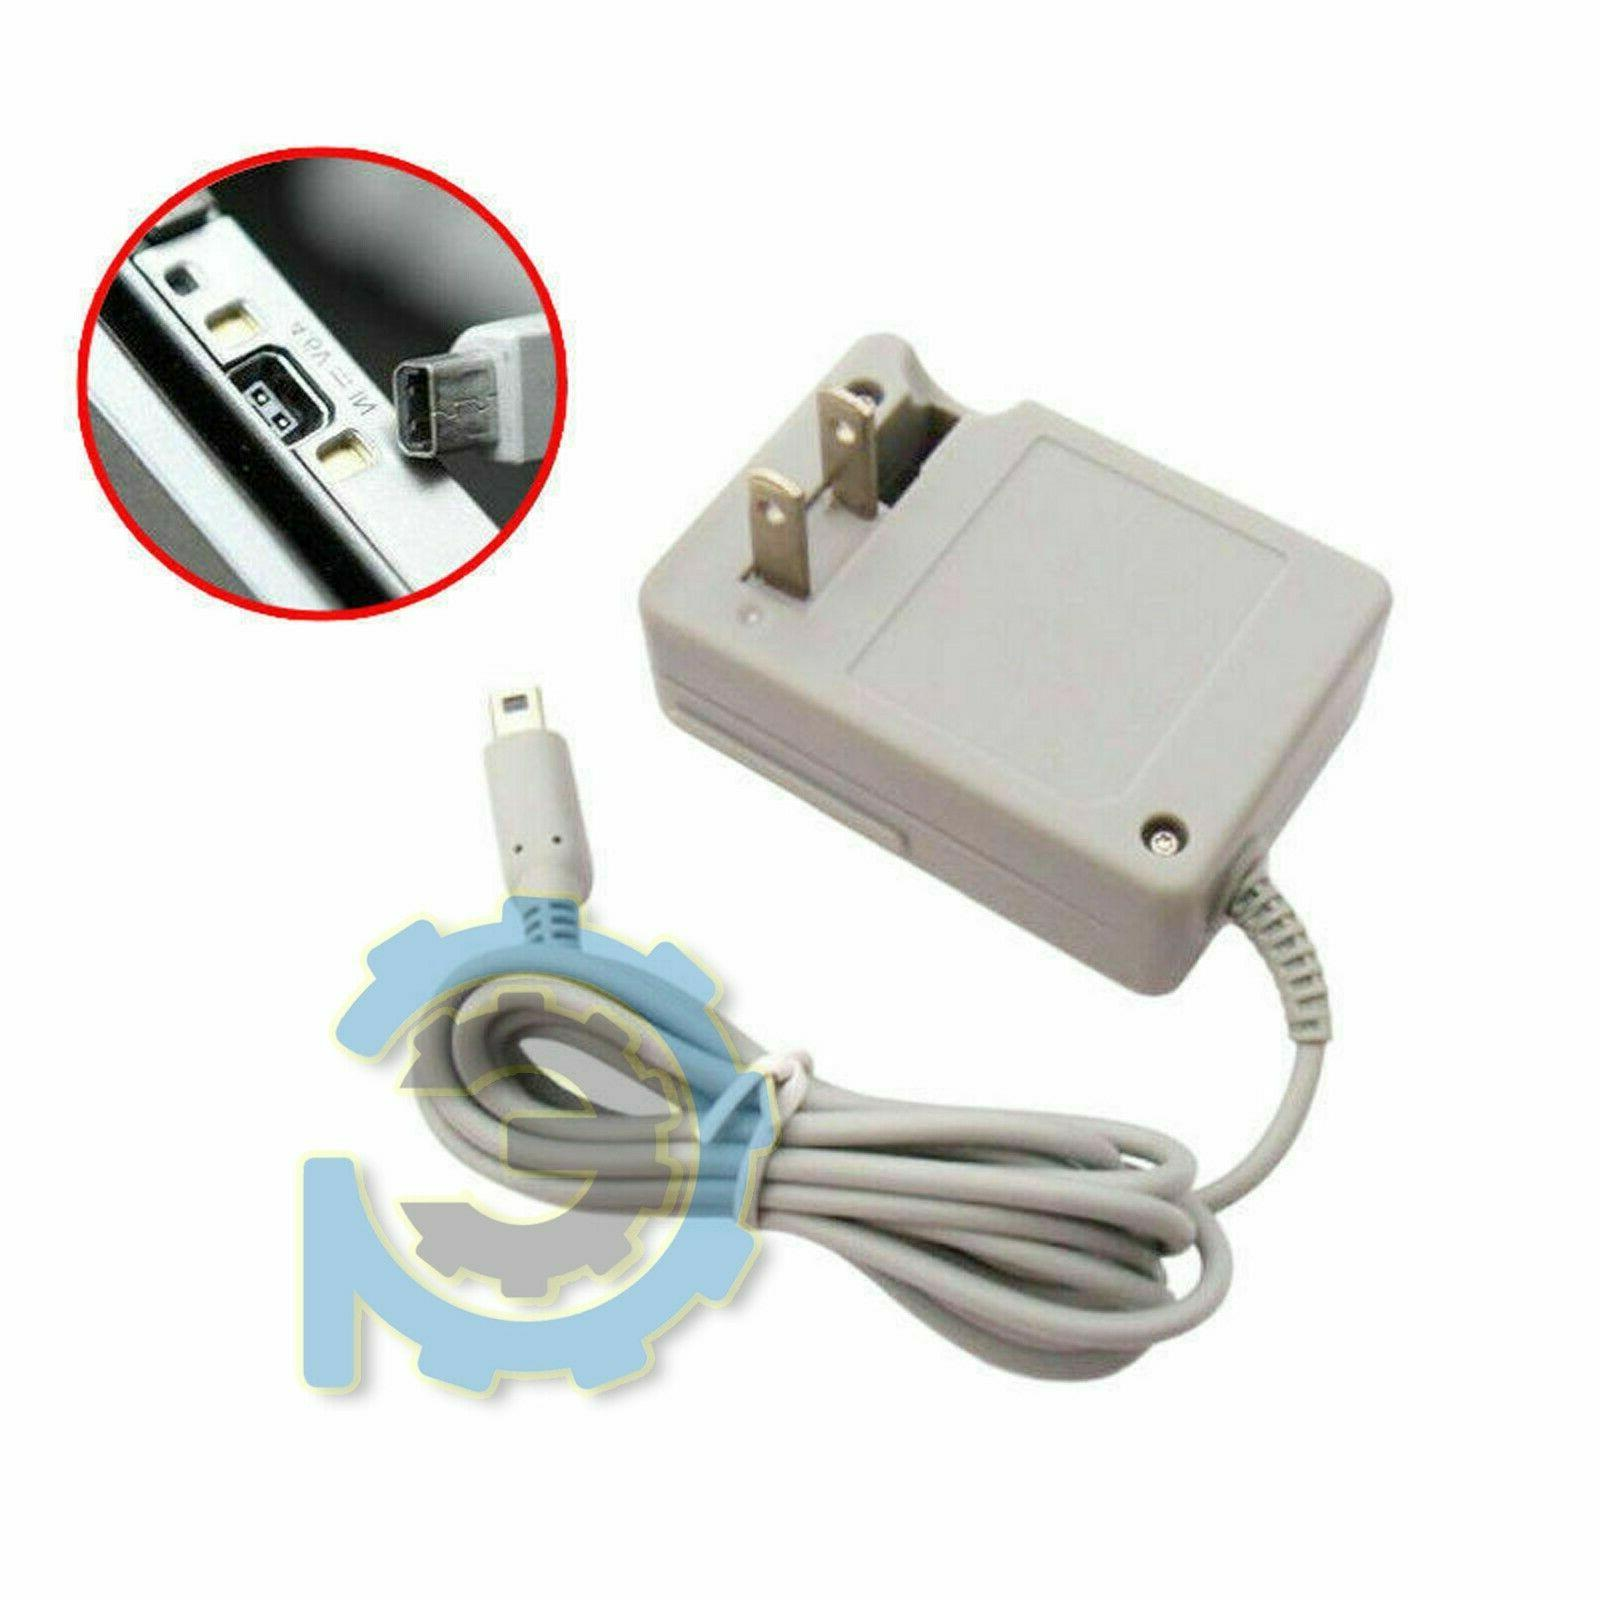 New AC Wall Cable for Nintendo DSi/ DSi XL